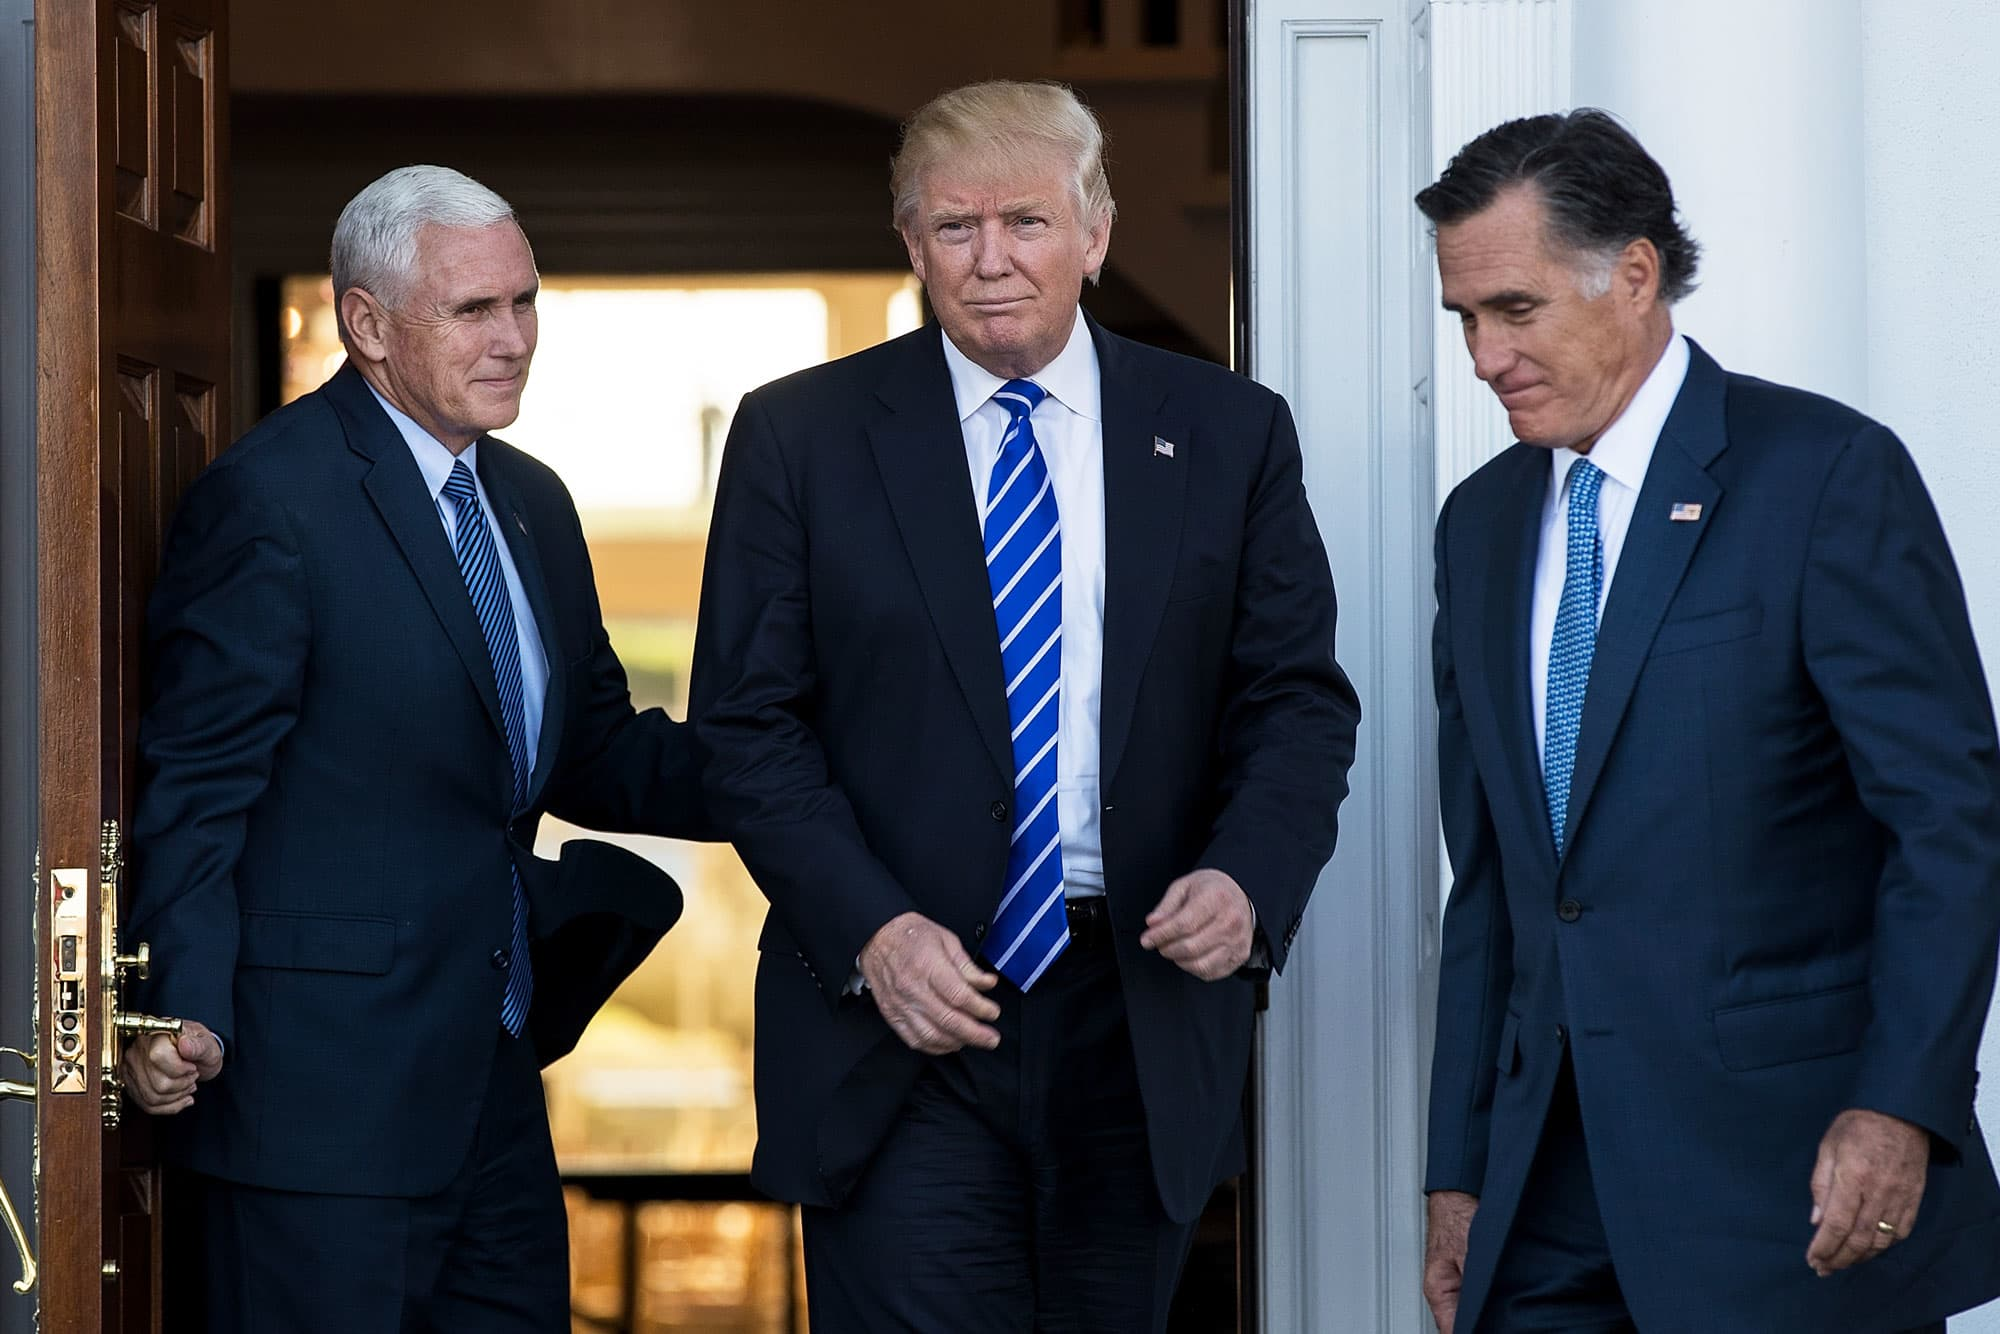 Trump Meets With Mitt Romney One Of His Harshest Republican Critics